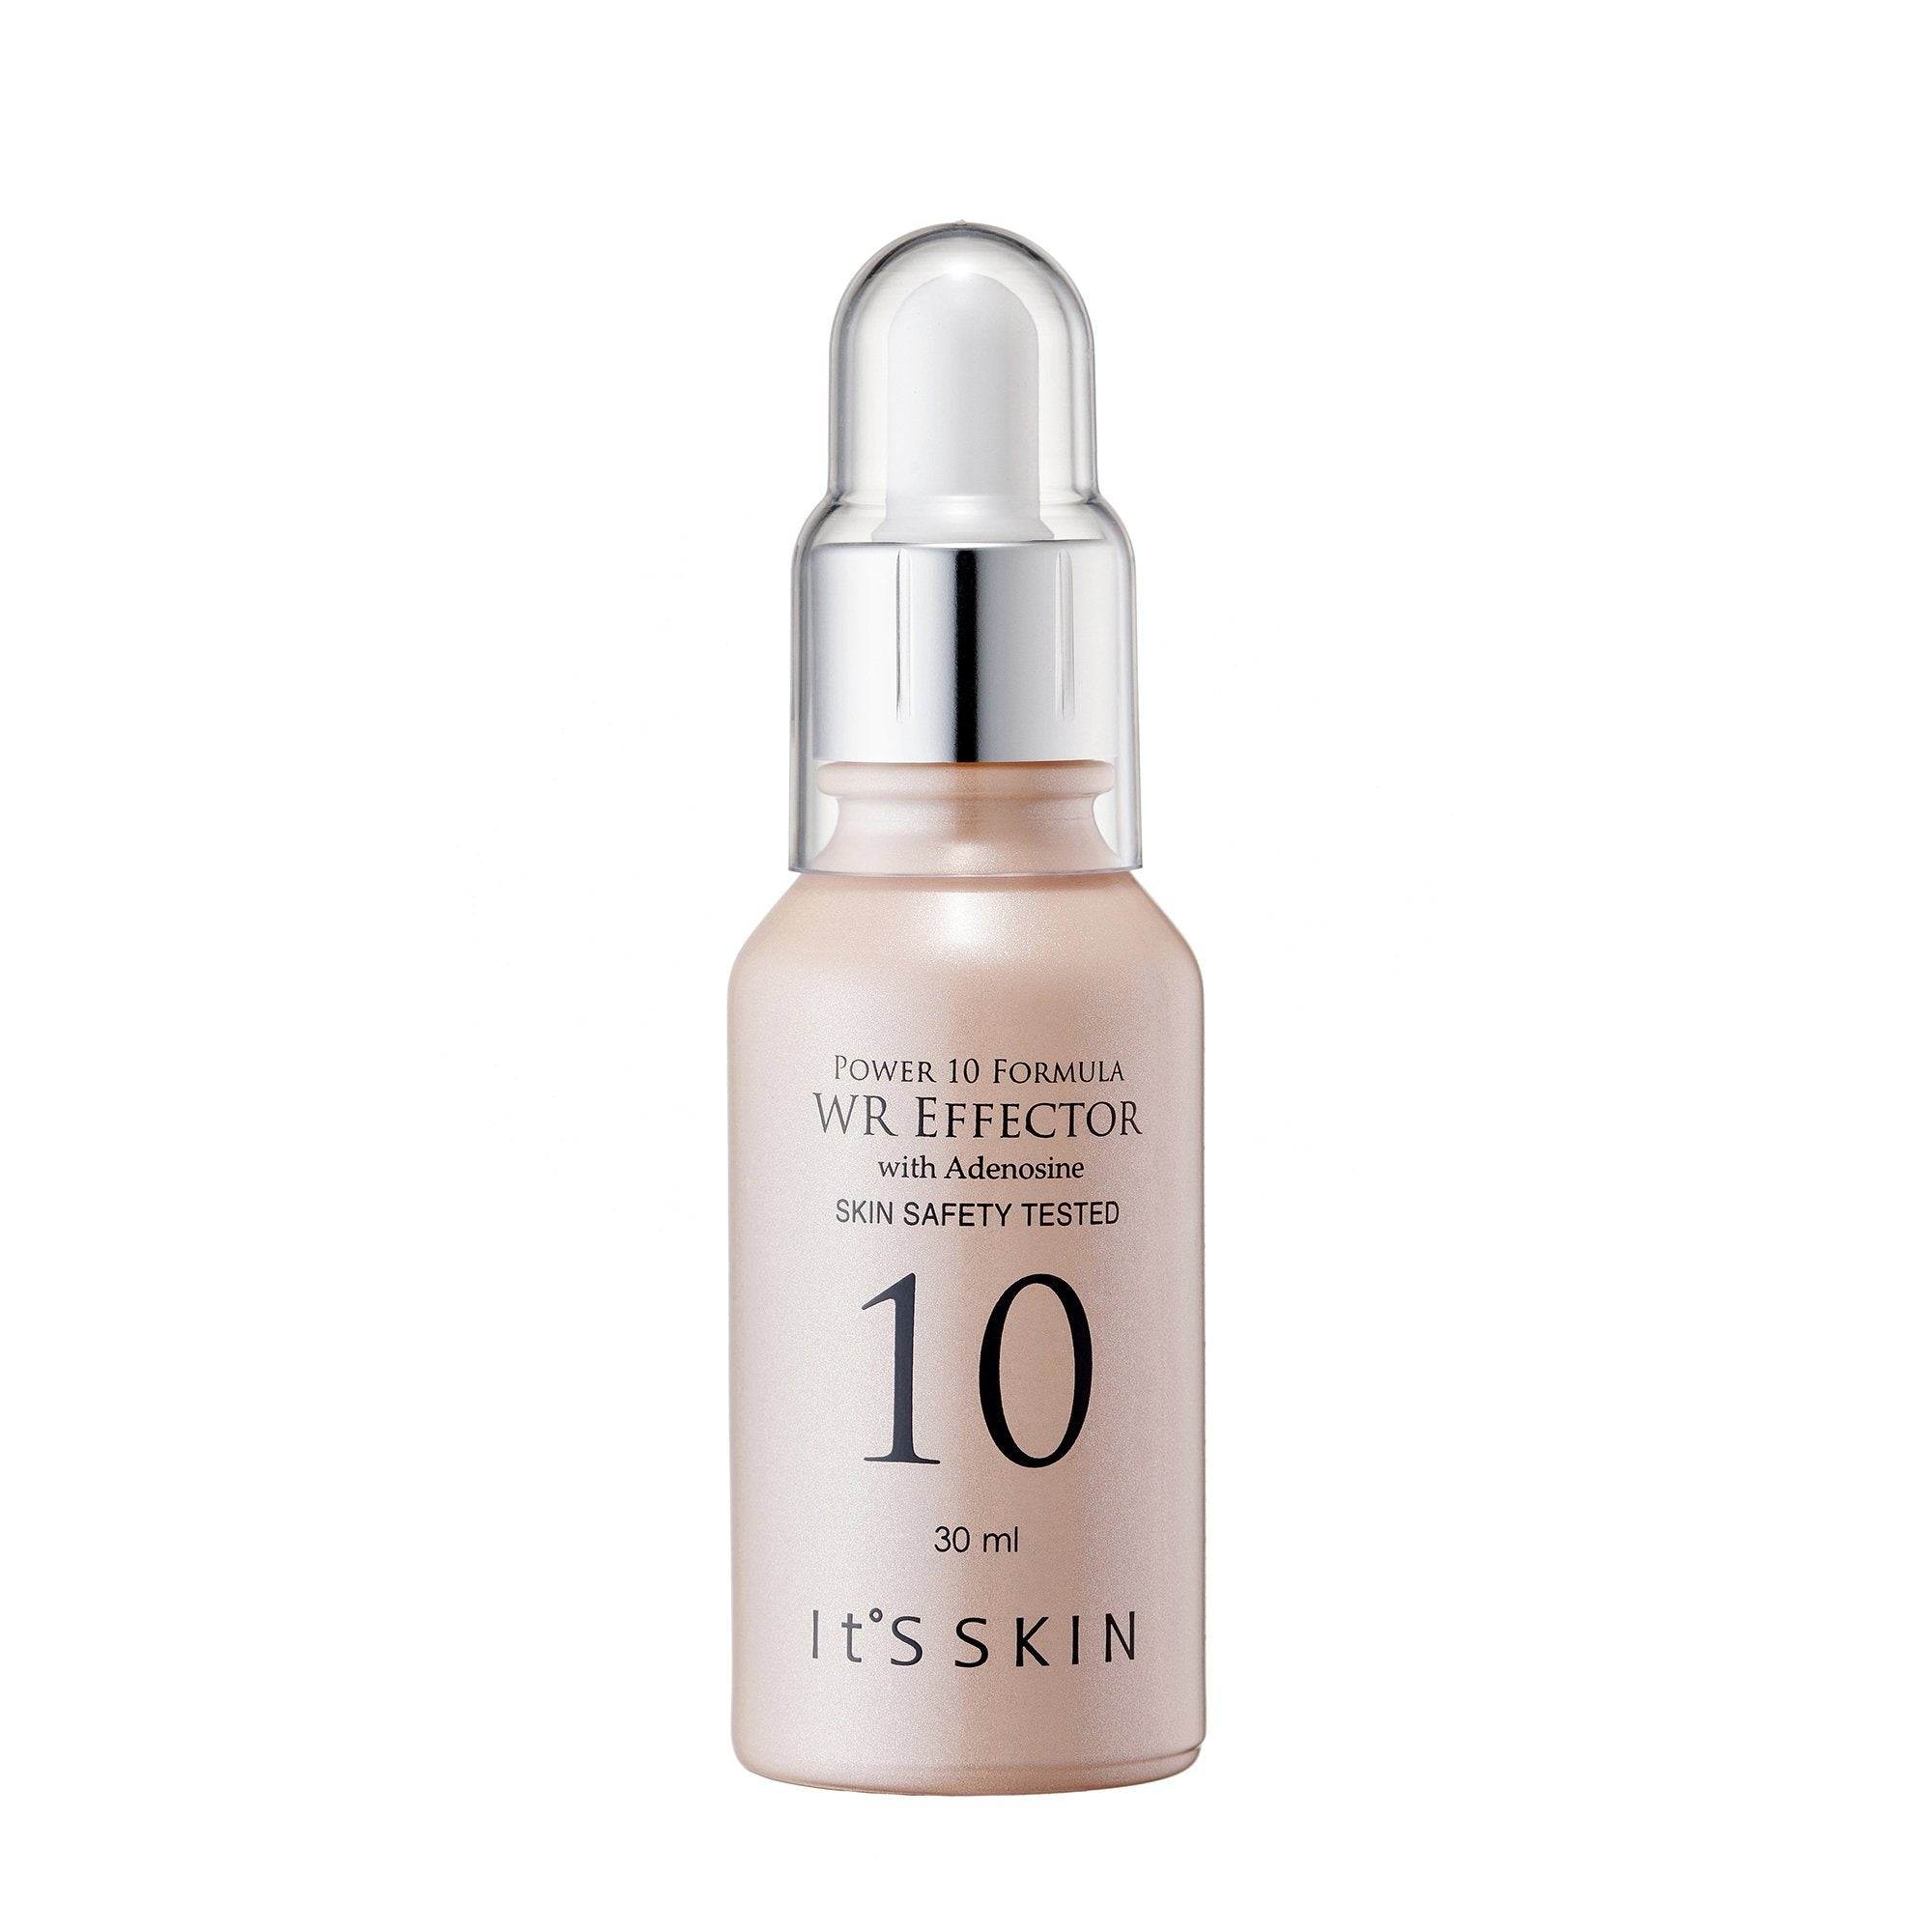 Health & Beauty > Personal Care > Cosmetics > Skin Care > Lotion & Moisturizer - Power 10 Formula WR Effector Serum Do Twarzy 30 Ml